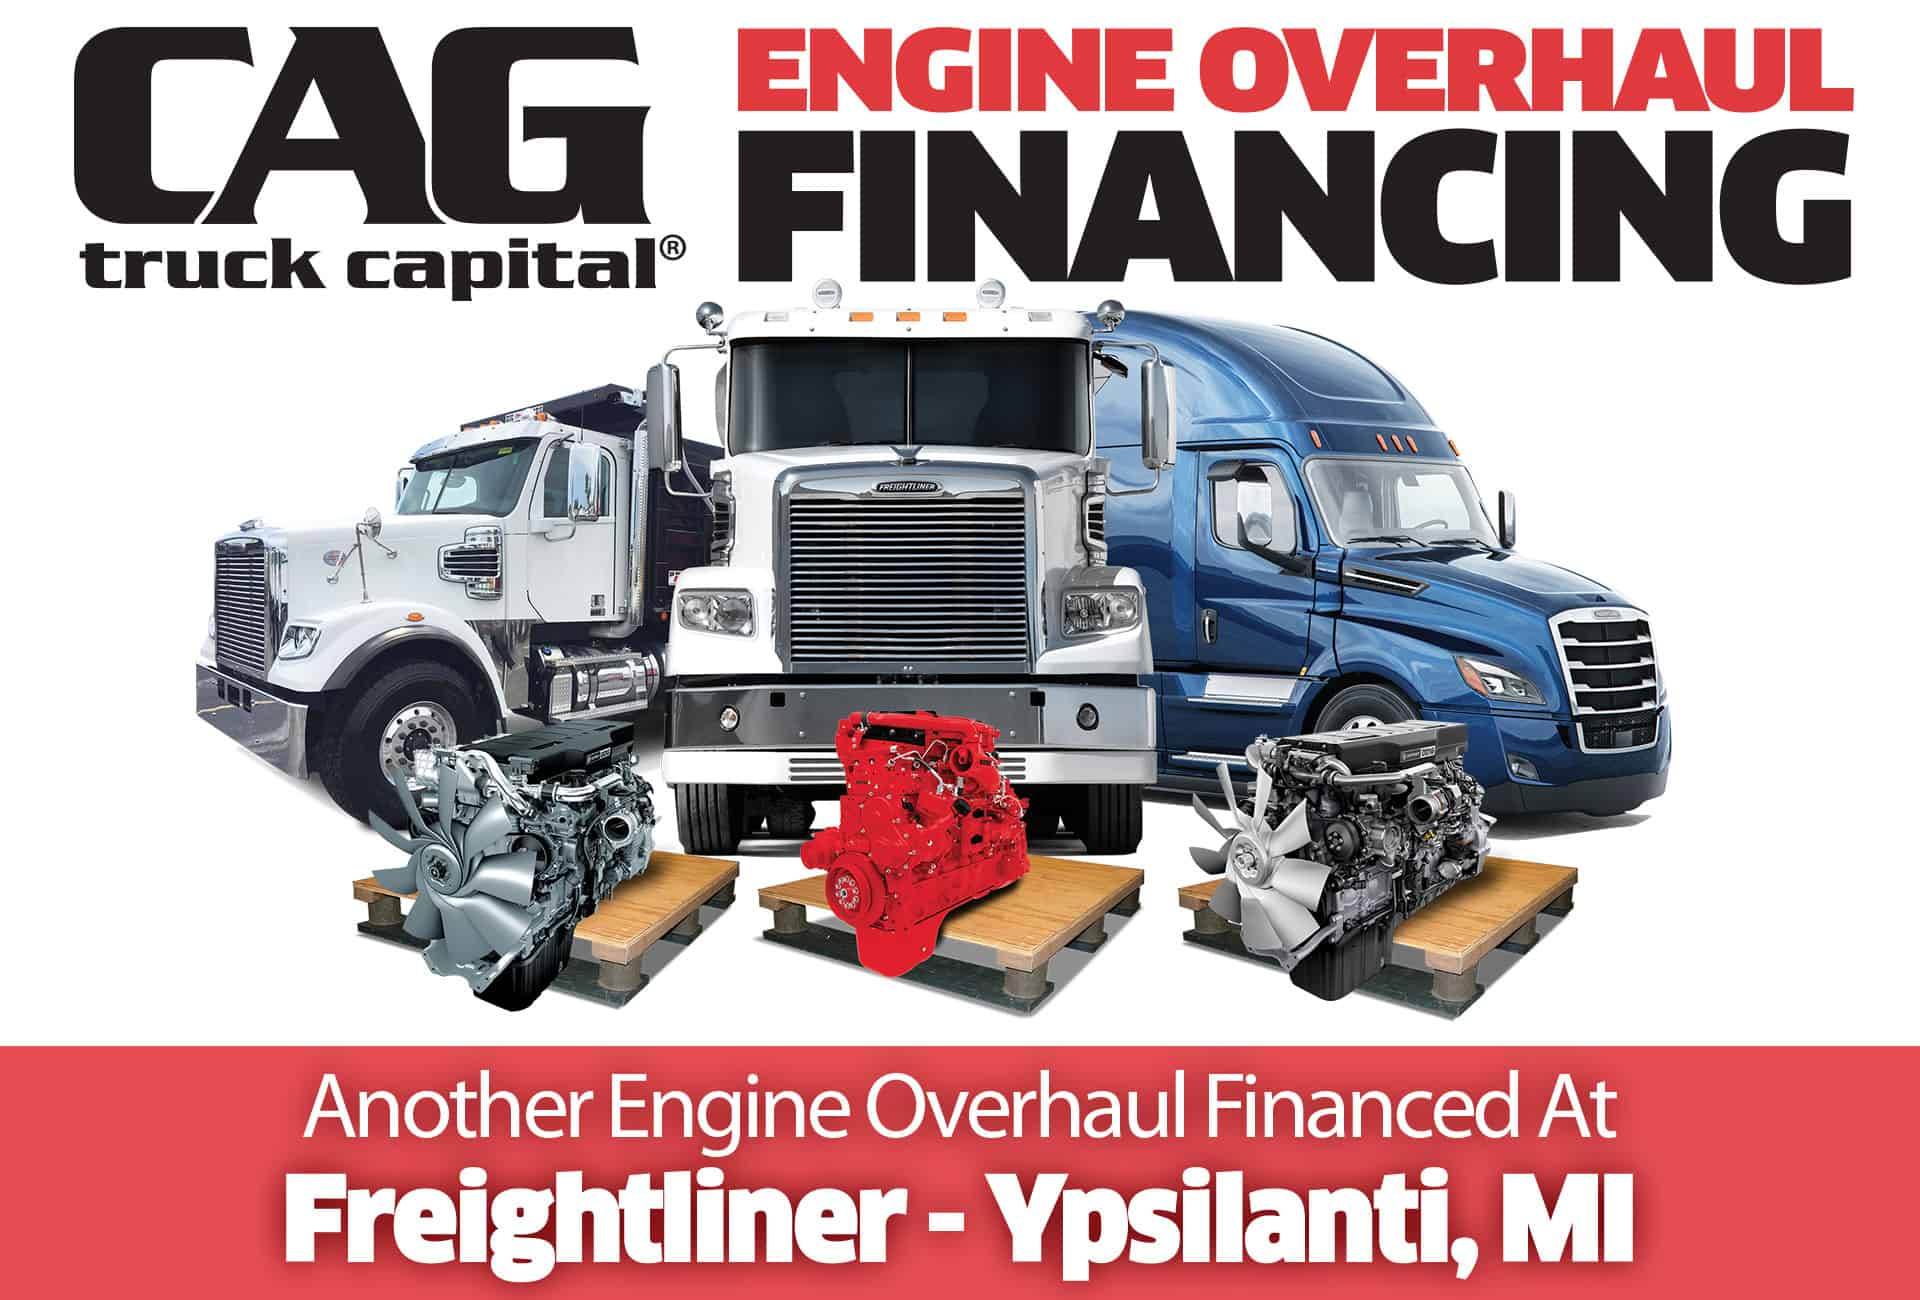 CAG Truck Capital provides overhaul financing for Freightliner Engine Overhauls performed at Wolverine Truck Sales, Ypsilanti, MI.